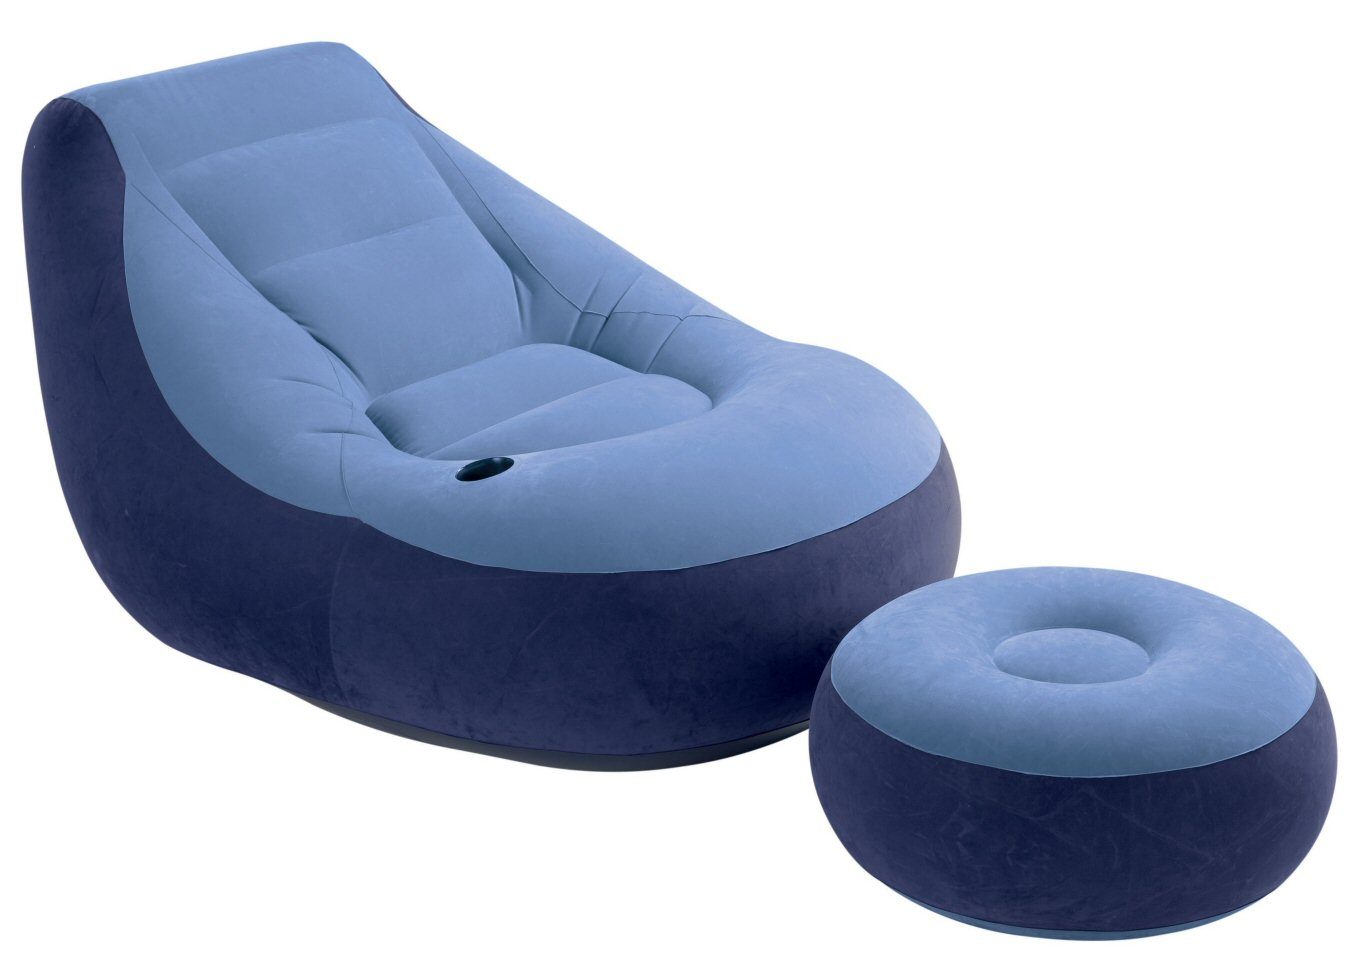 Home furniture amp diy gt furniture gt bean bags amp inflatables